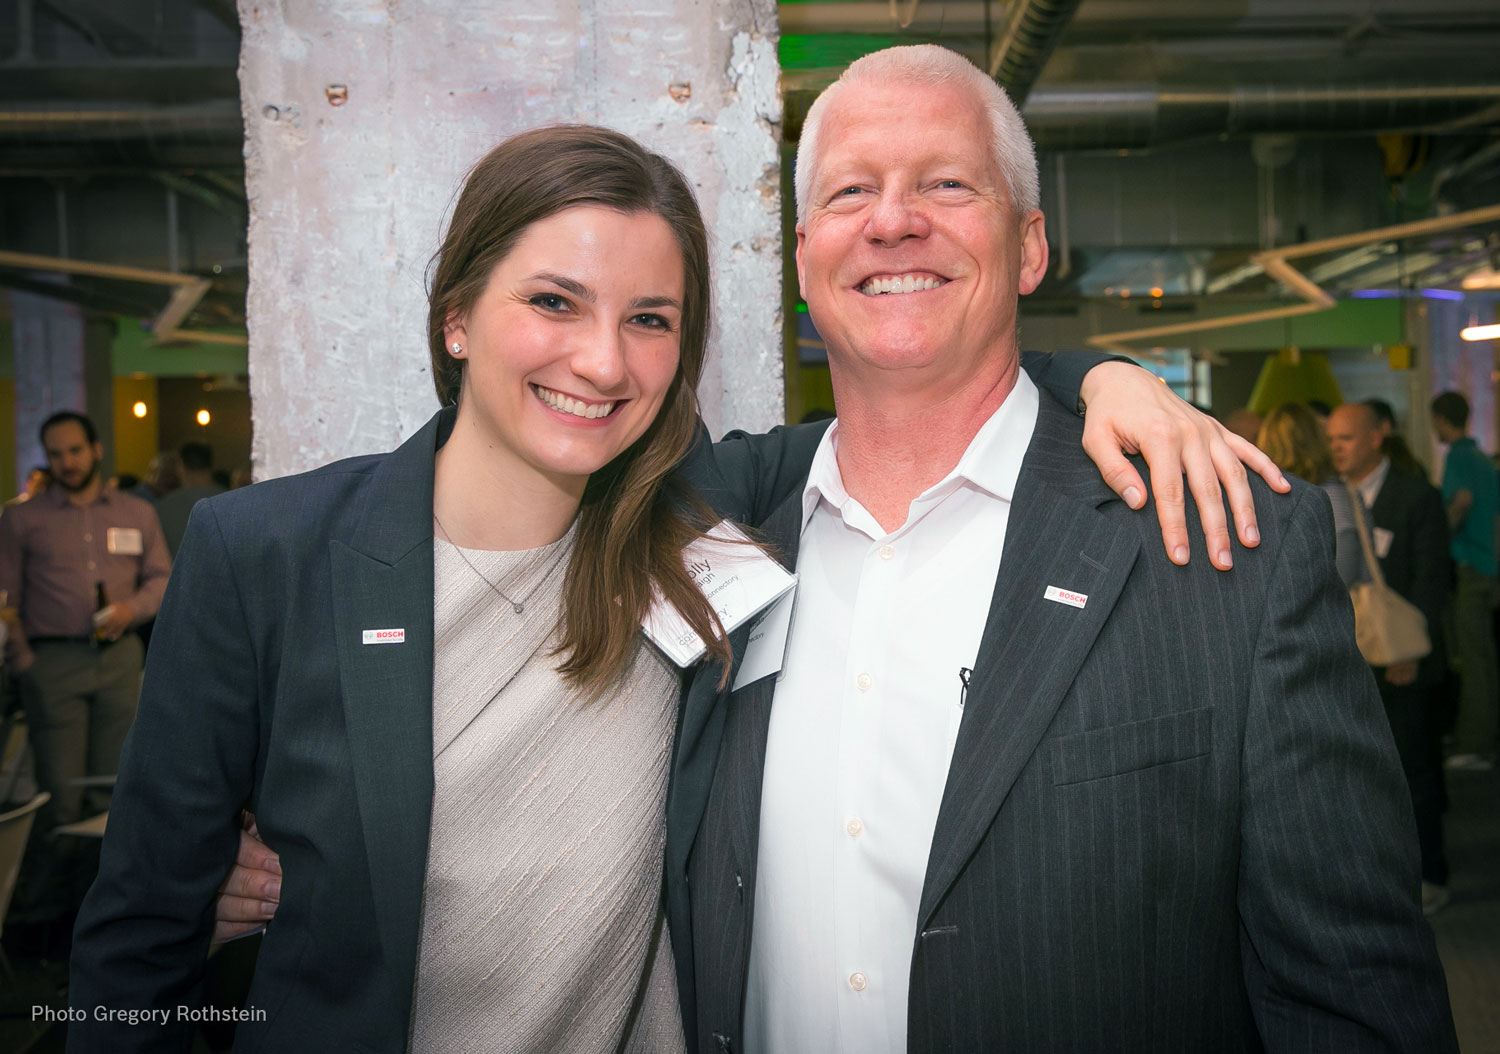 Molly Haigh & Robert Wildeman at an Innovation Event | Chicago Connectory